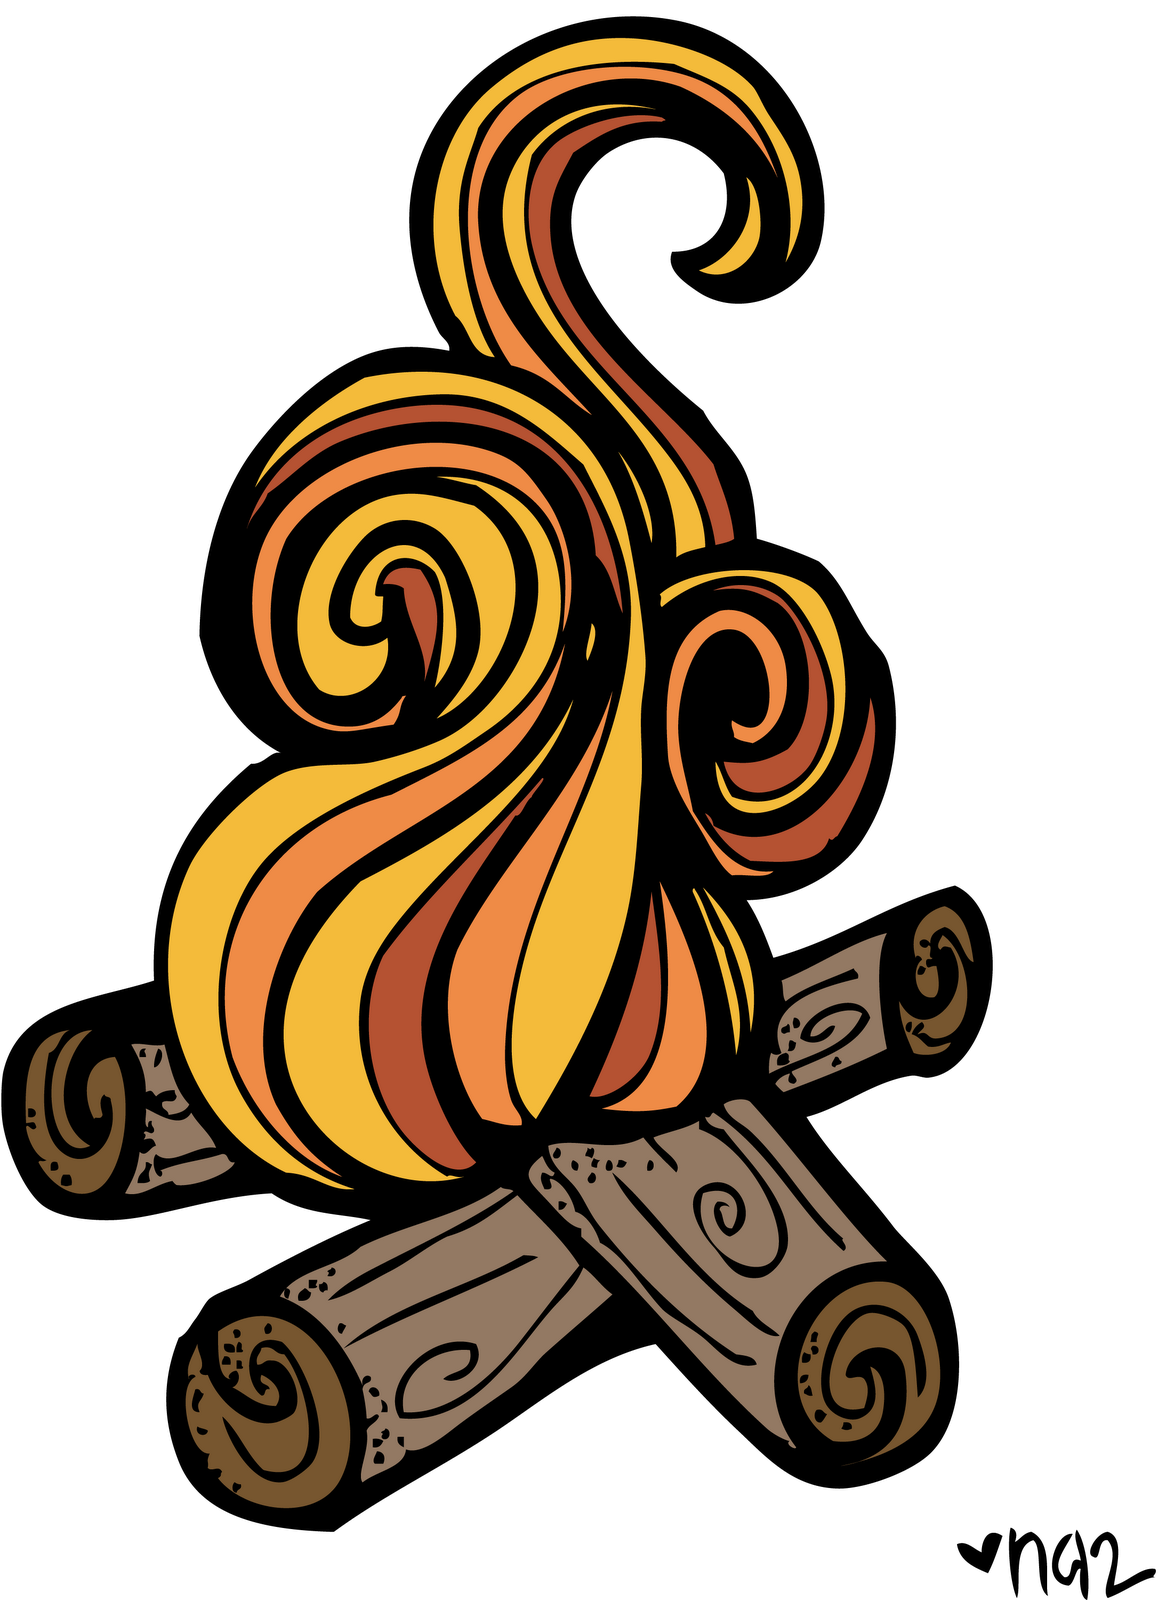 Free s mores download. Campfire clipart clipart royalty free library